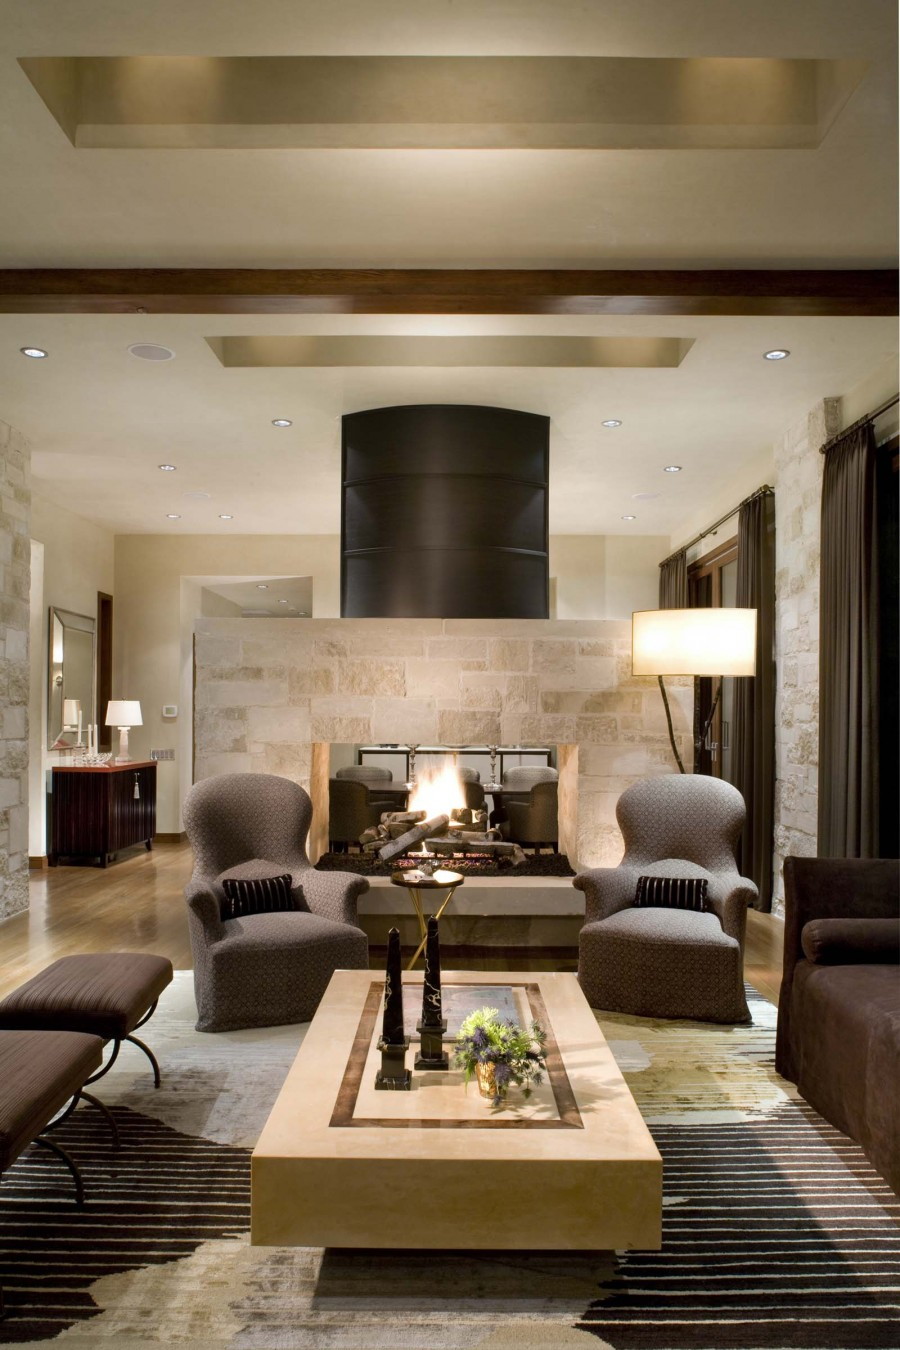 16 fabulous earth tones living room designs decoholic for Modern interior design